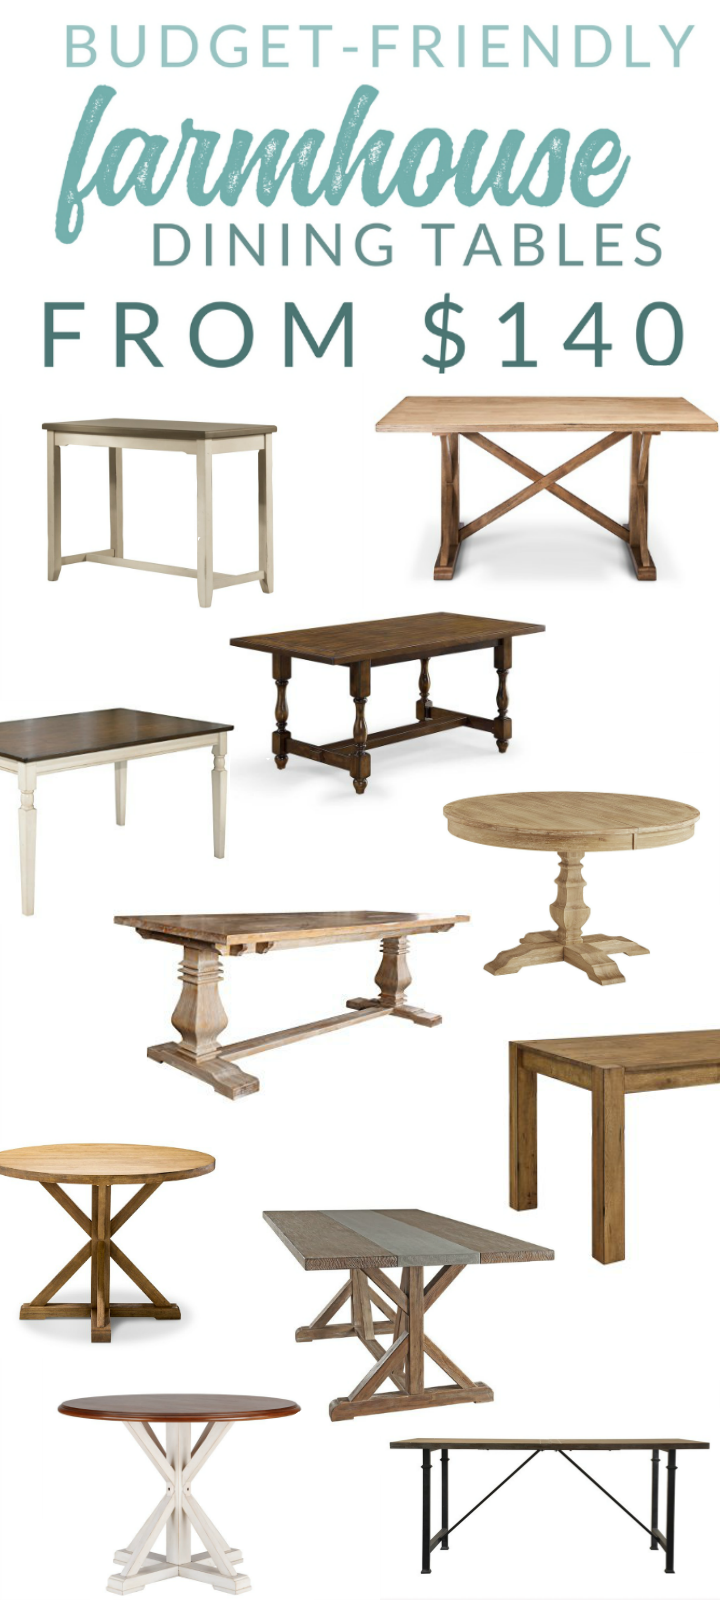 Budget-Friendly Farmhouse Table Options – 14 Tables Starting at $140